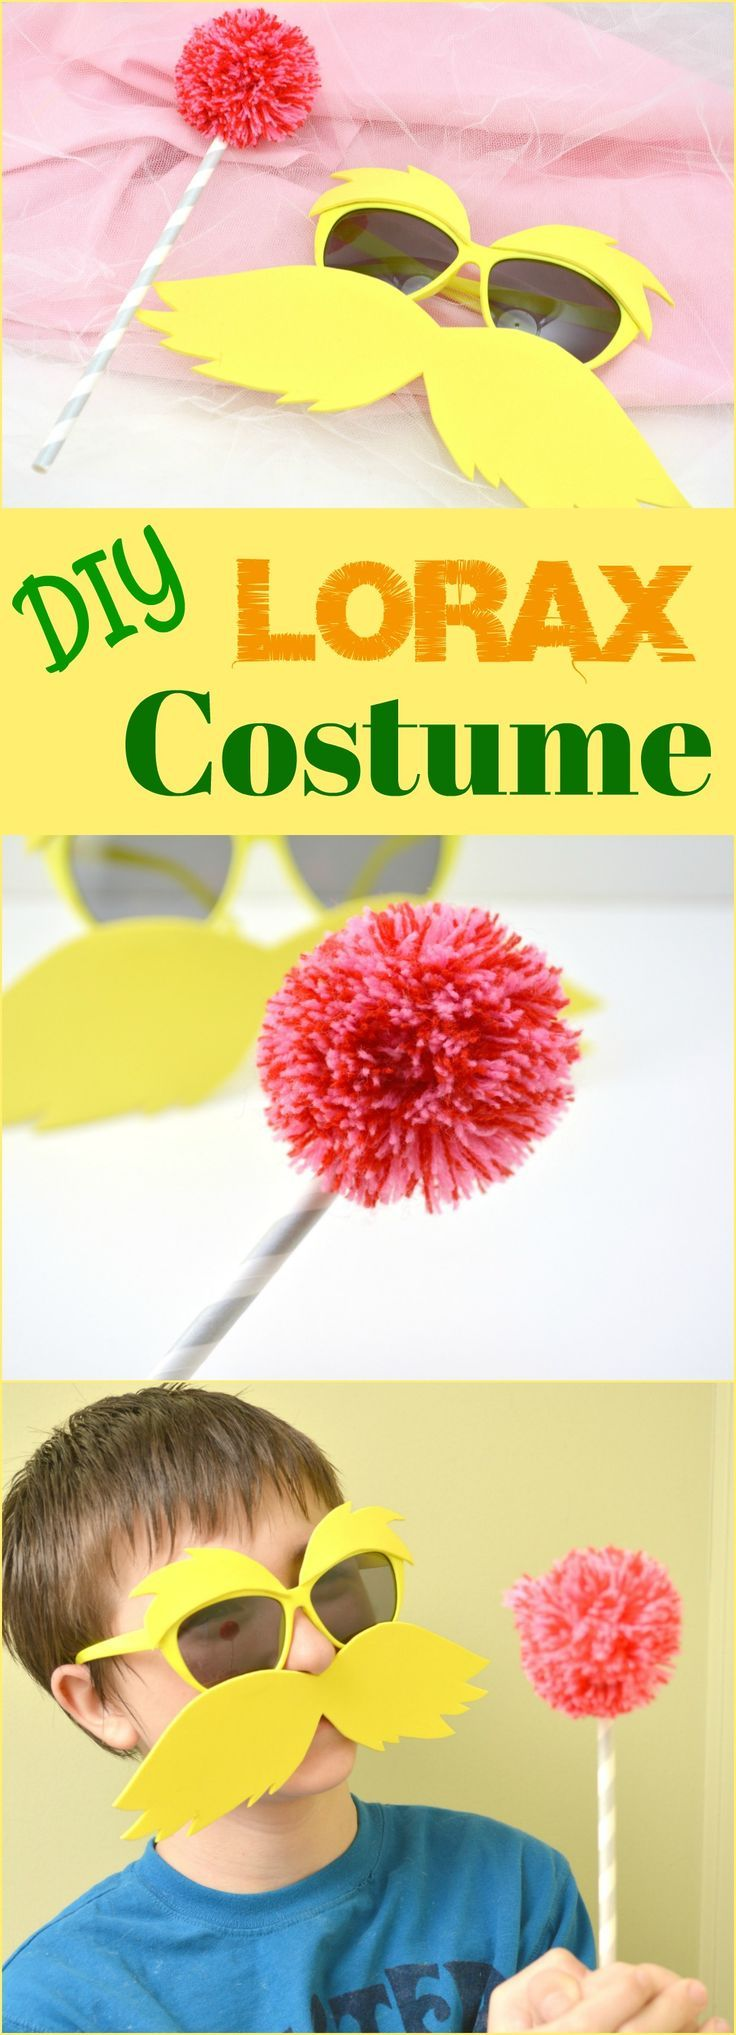 This DIY Lorax Costume is easy & simple! Kids can dress up like their favorite Dr Seuss character on Dr Seuss Day (Read Across America Day) and learn about conservation and loving our earth! Simple step by step directions. #drseuss #seussday #readacrossamerica